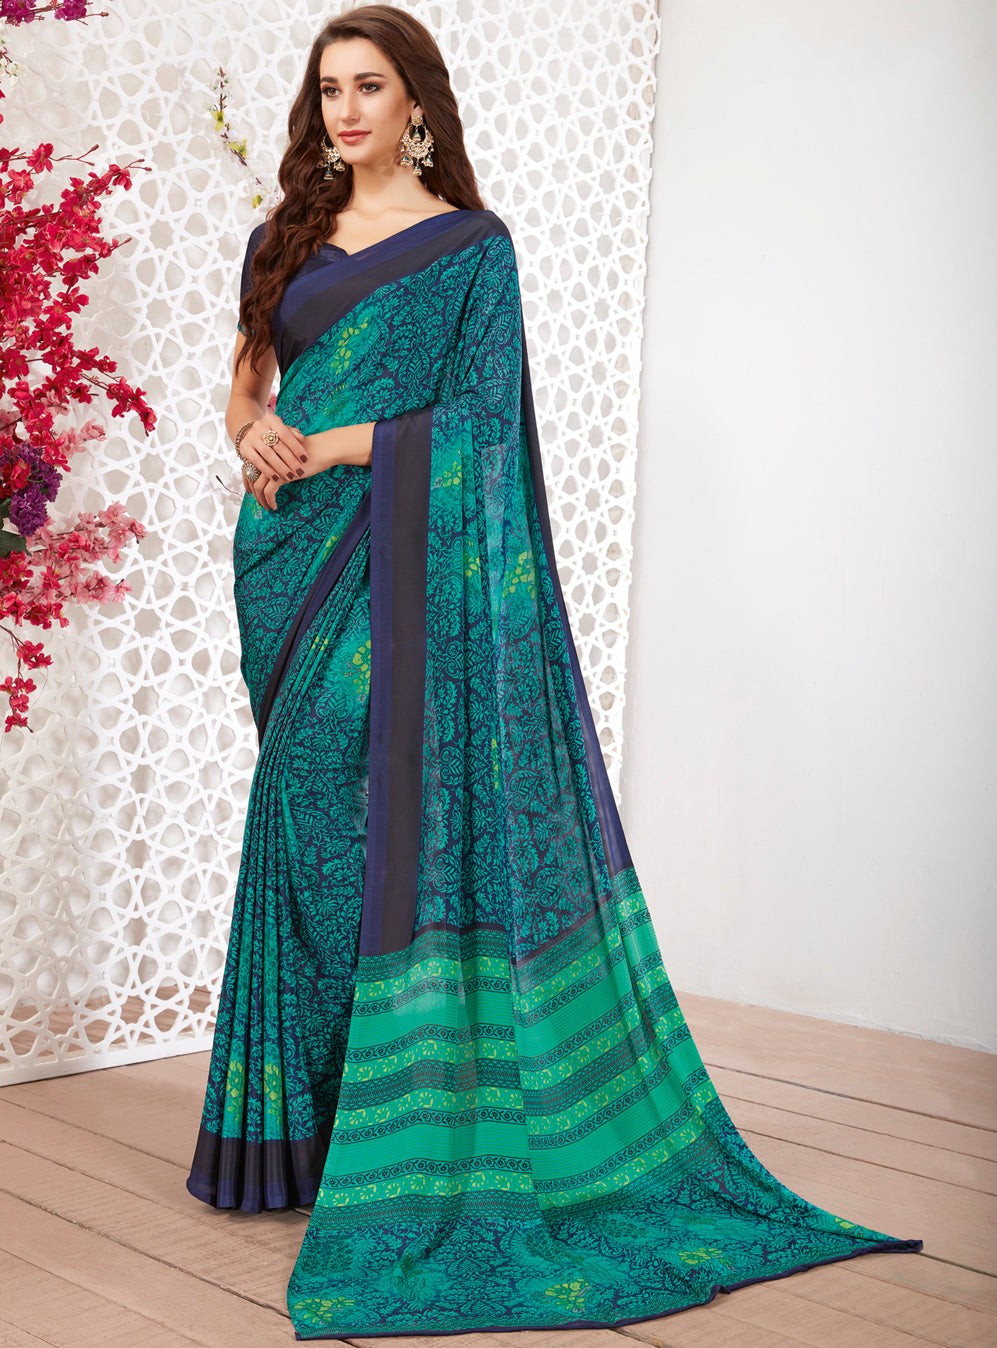 Blue & Sea Green Color Crepe Light Weight Printed Sarees NYF-7256